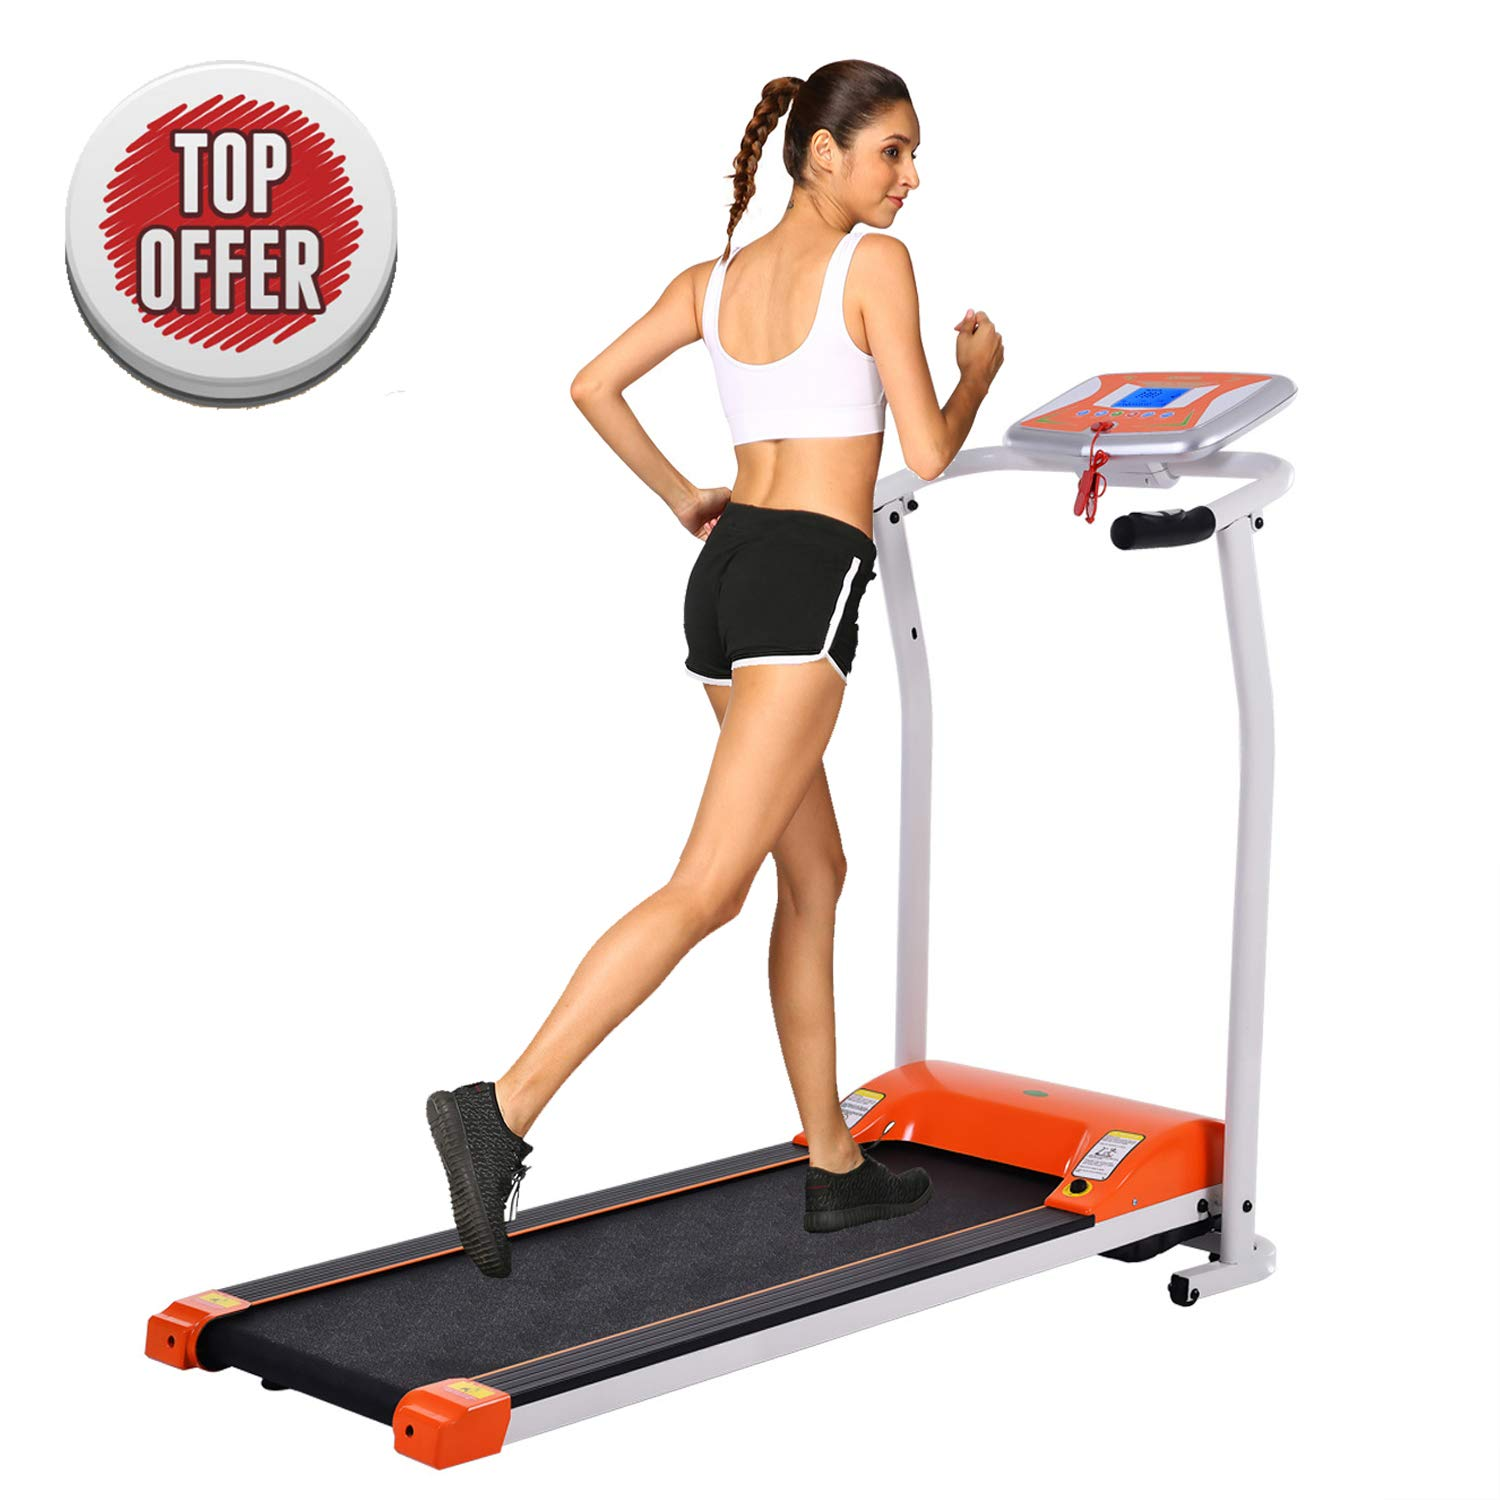 Folding Electric Treadmill Running Machine Power Motorized for Home Gym Exercise Walking Fitness (1.5 HP - Orange - Not Incline)